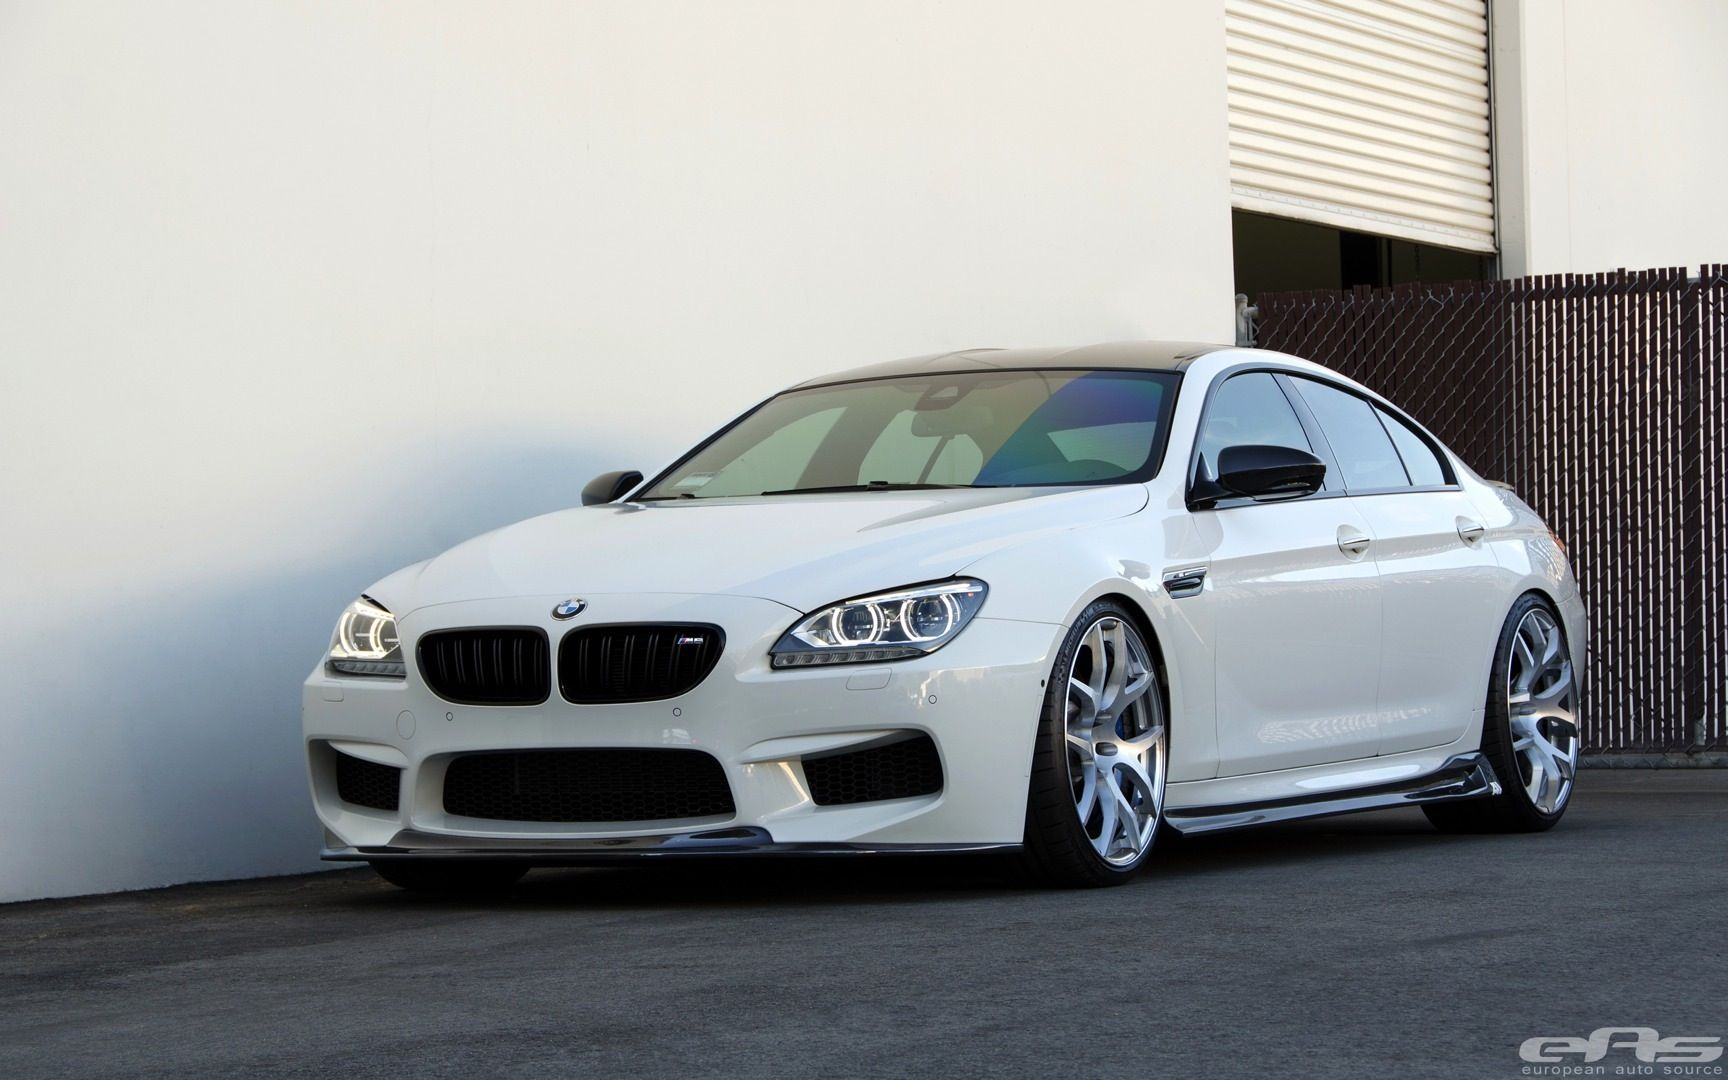 G Power Bmw M Gran Coupe Static x Wallpaper